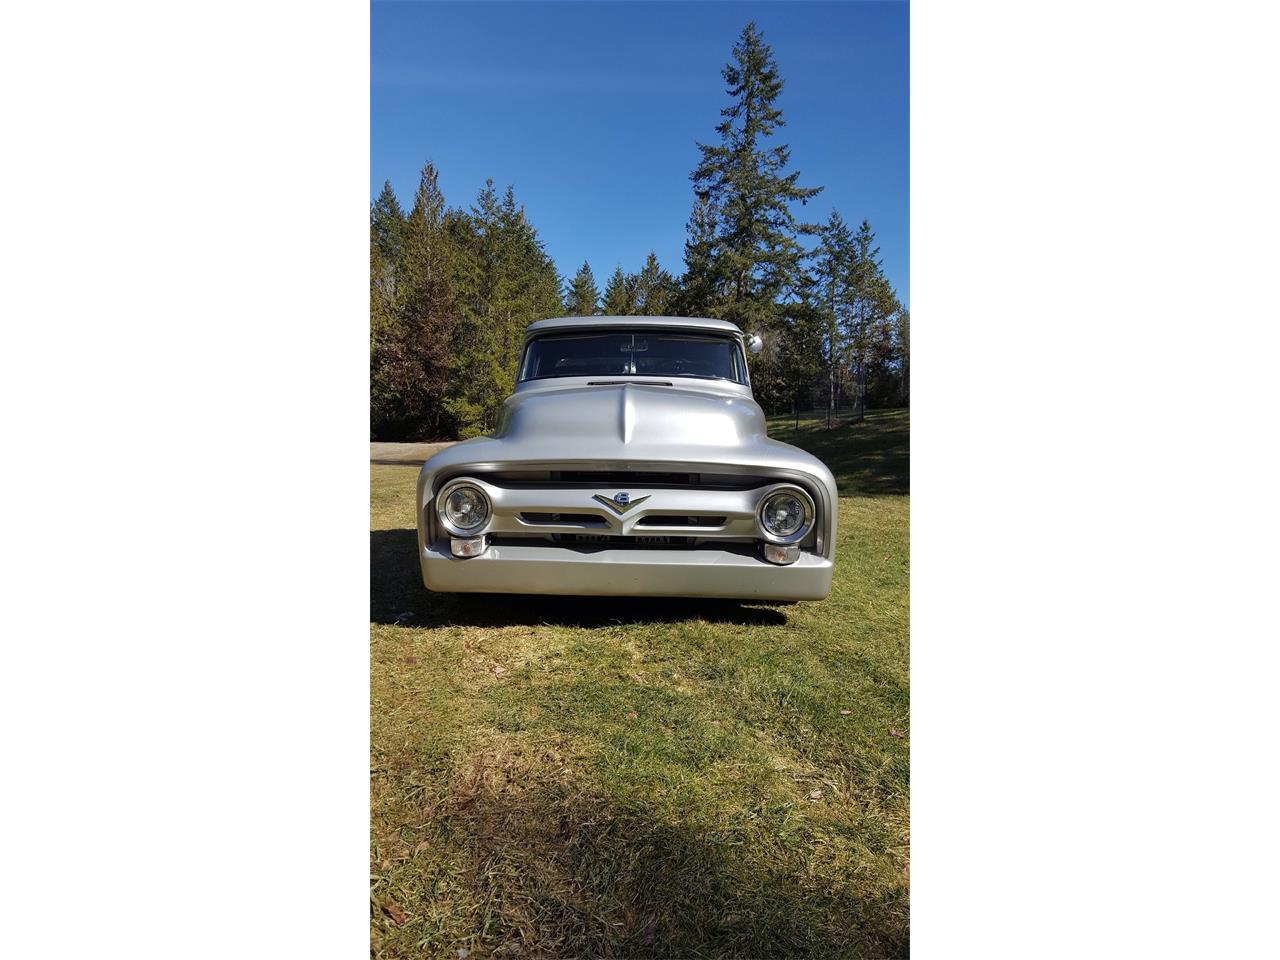 For Sale: 1956 Ford F100 in Quilcene, Washington